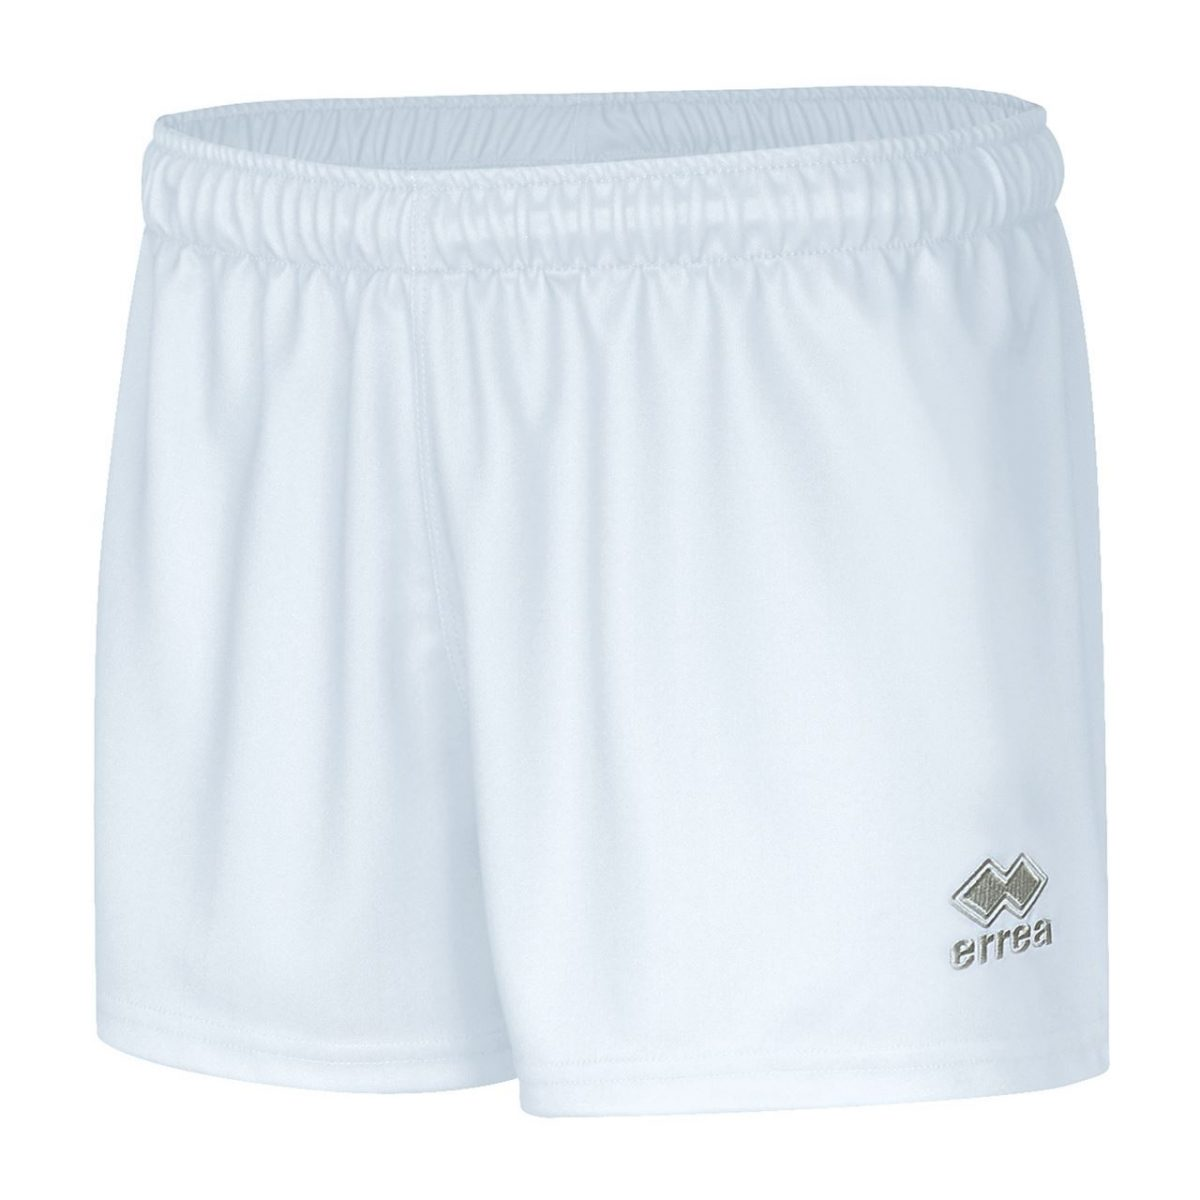 Errea Brest Rugby Shorts D4025